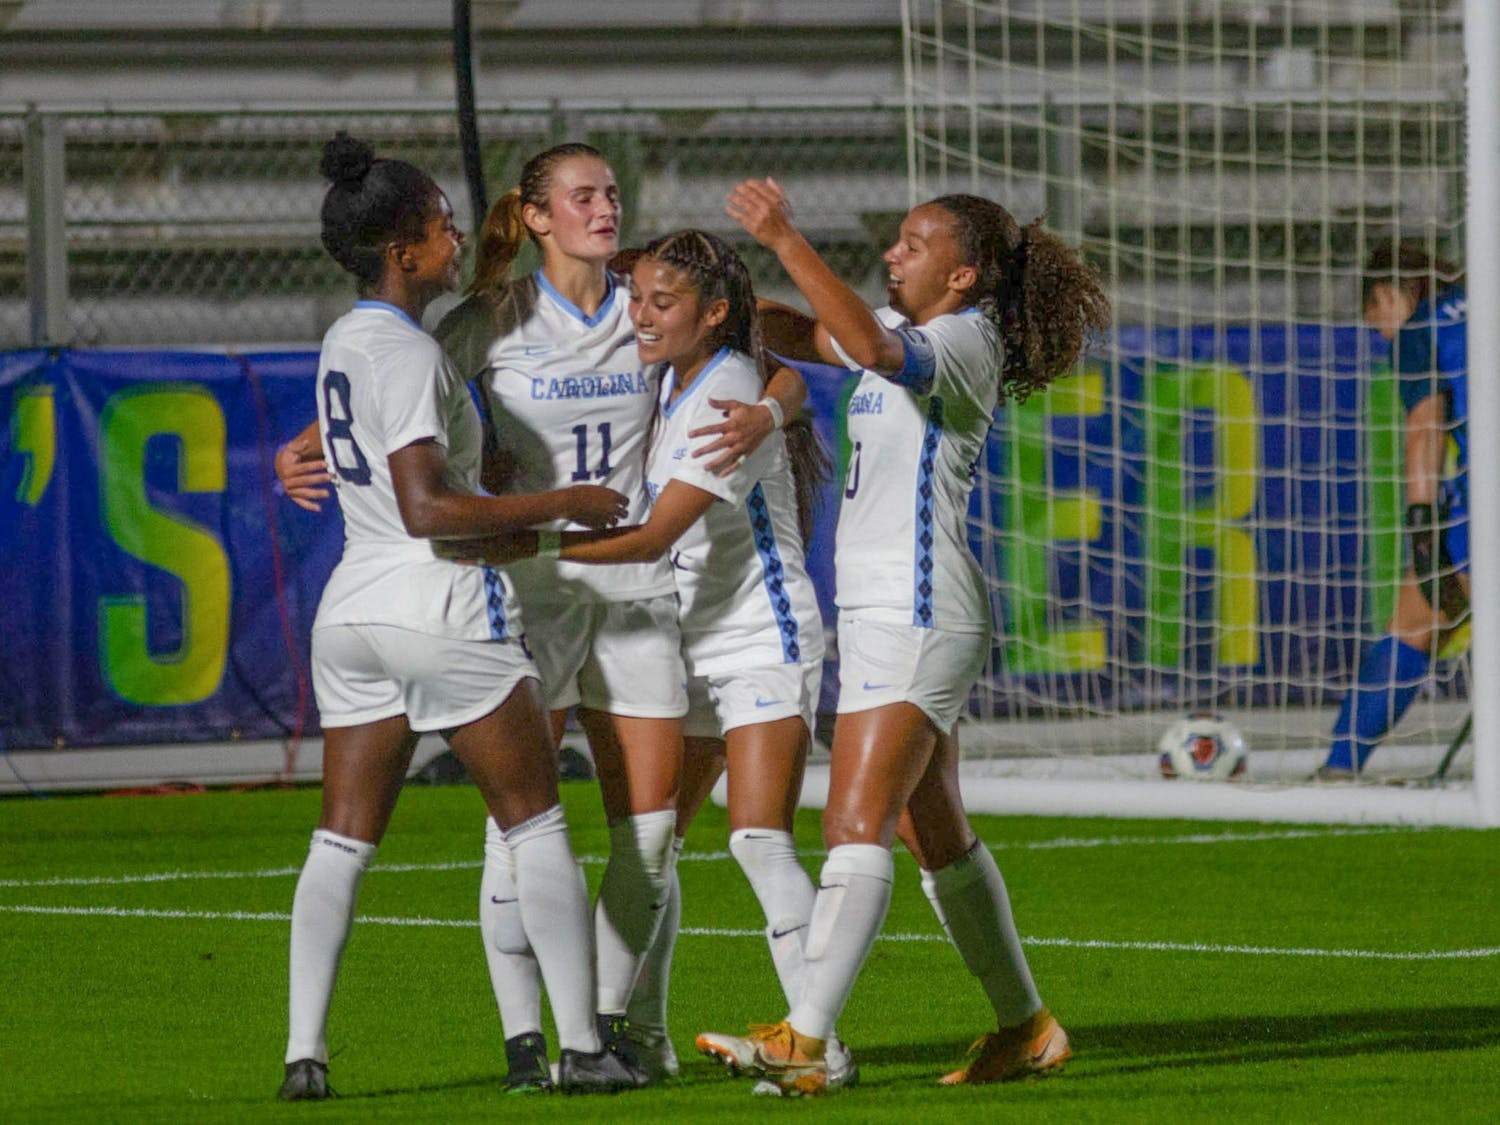 Members of UNC's women's soccer team celebrate their first goal, scored by junior midfielder Brianna Pinto (8), during the first round of the ACC tournament against Virginia Tech on Tuesday, Nov. 10, 2020 at WakeMed Soccer Park. UNC beat Virginia Tech 1-0, with Pinto's goal being the only of the night.